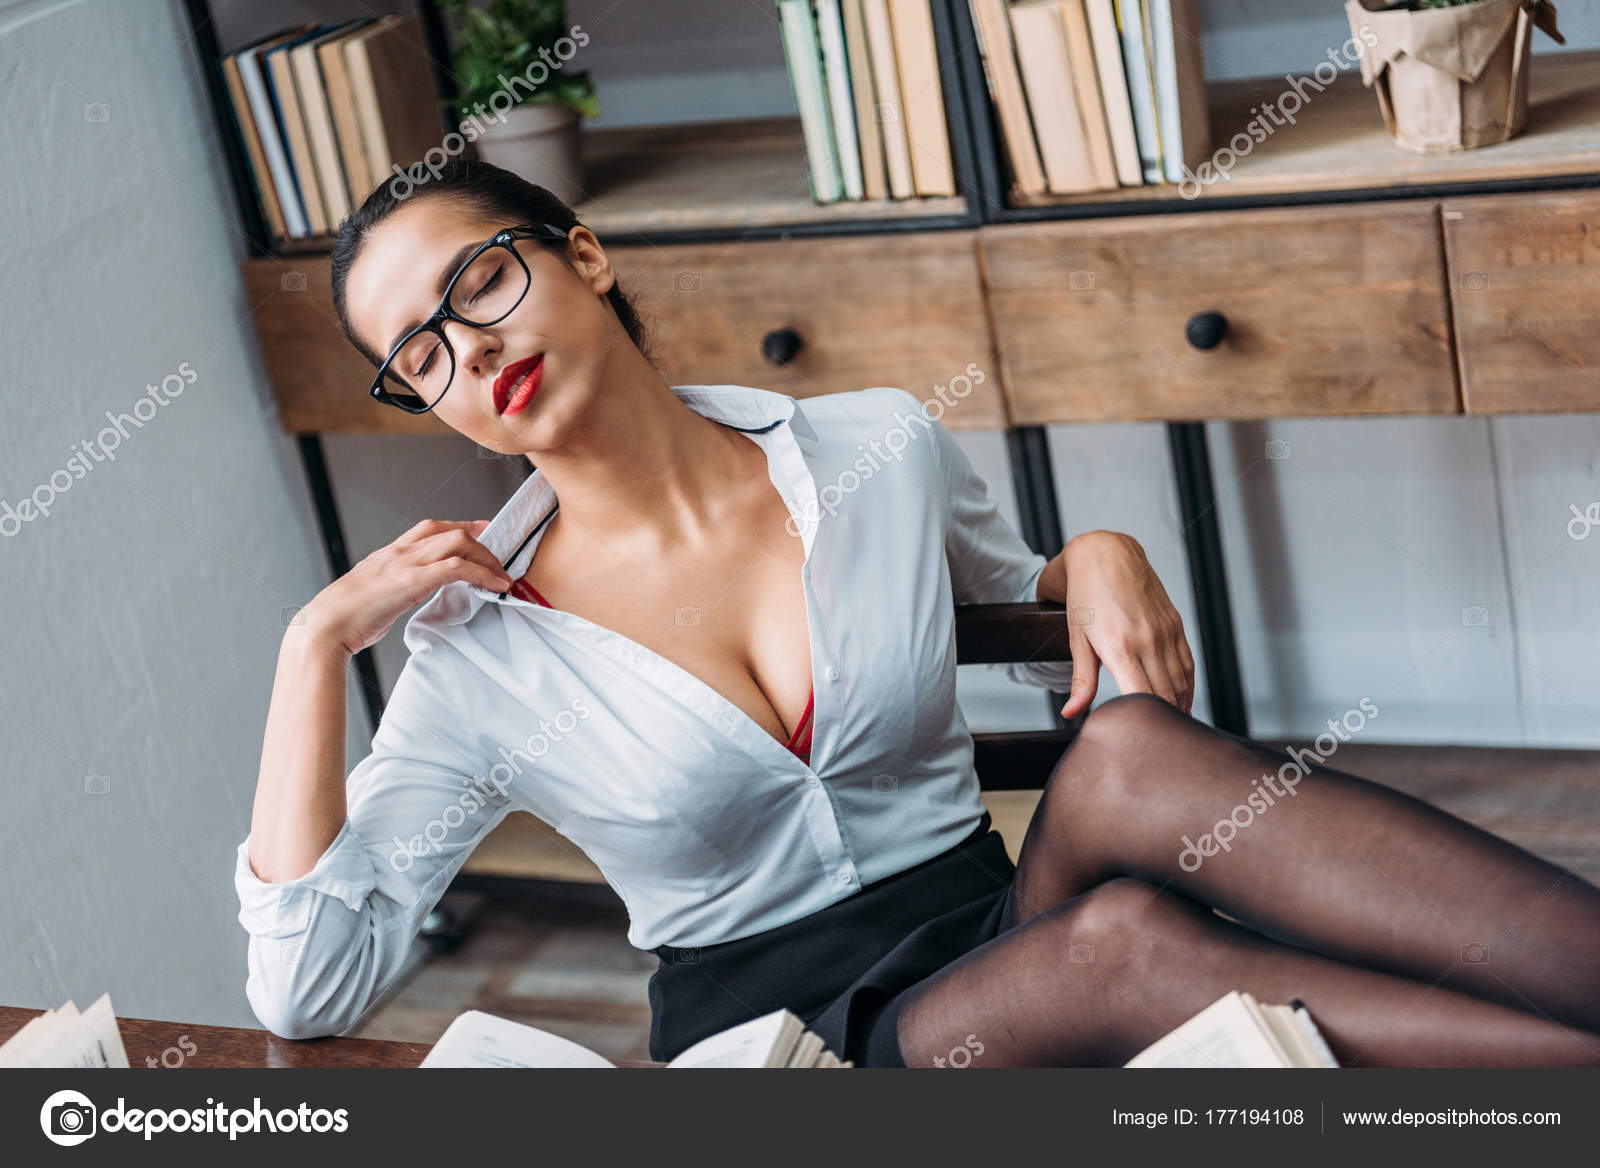 sexy image young teacher